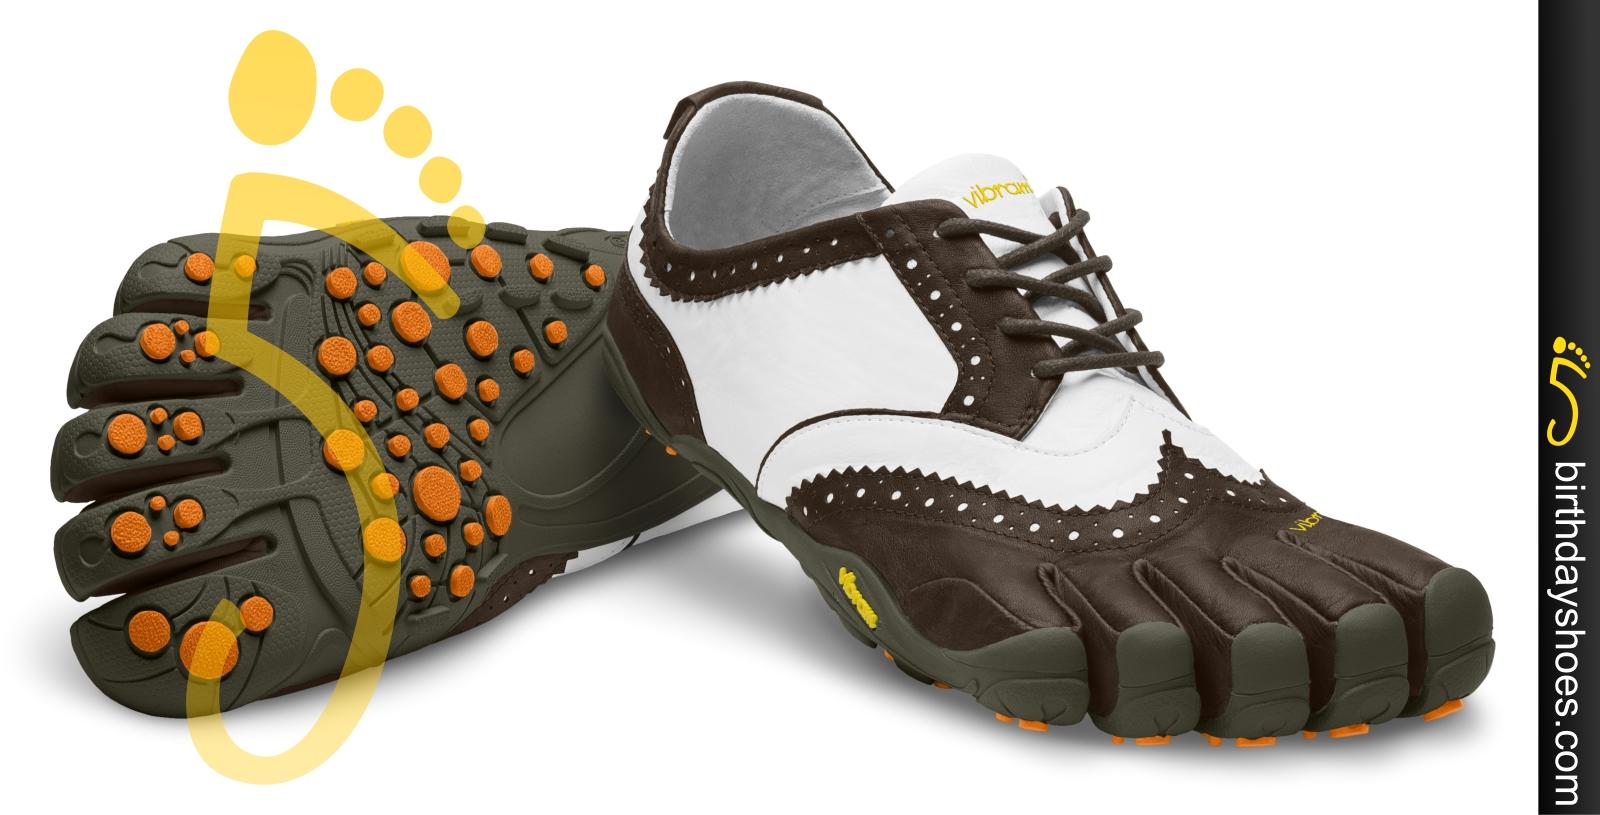 Golf Specific Barefoot Toe Shoes To Come From Vibram Fivefingers Birthday Shoes Toe Shoes Barefoot Or Minimalist Shoes And Vibram Fivefingers Reviews News Forums